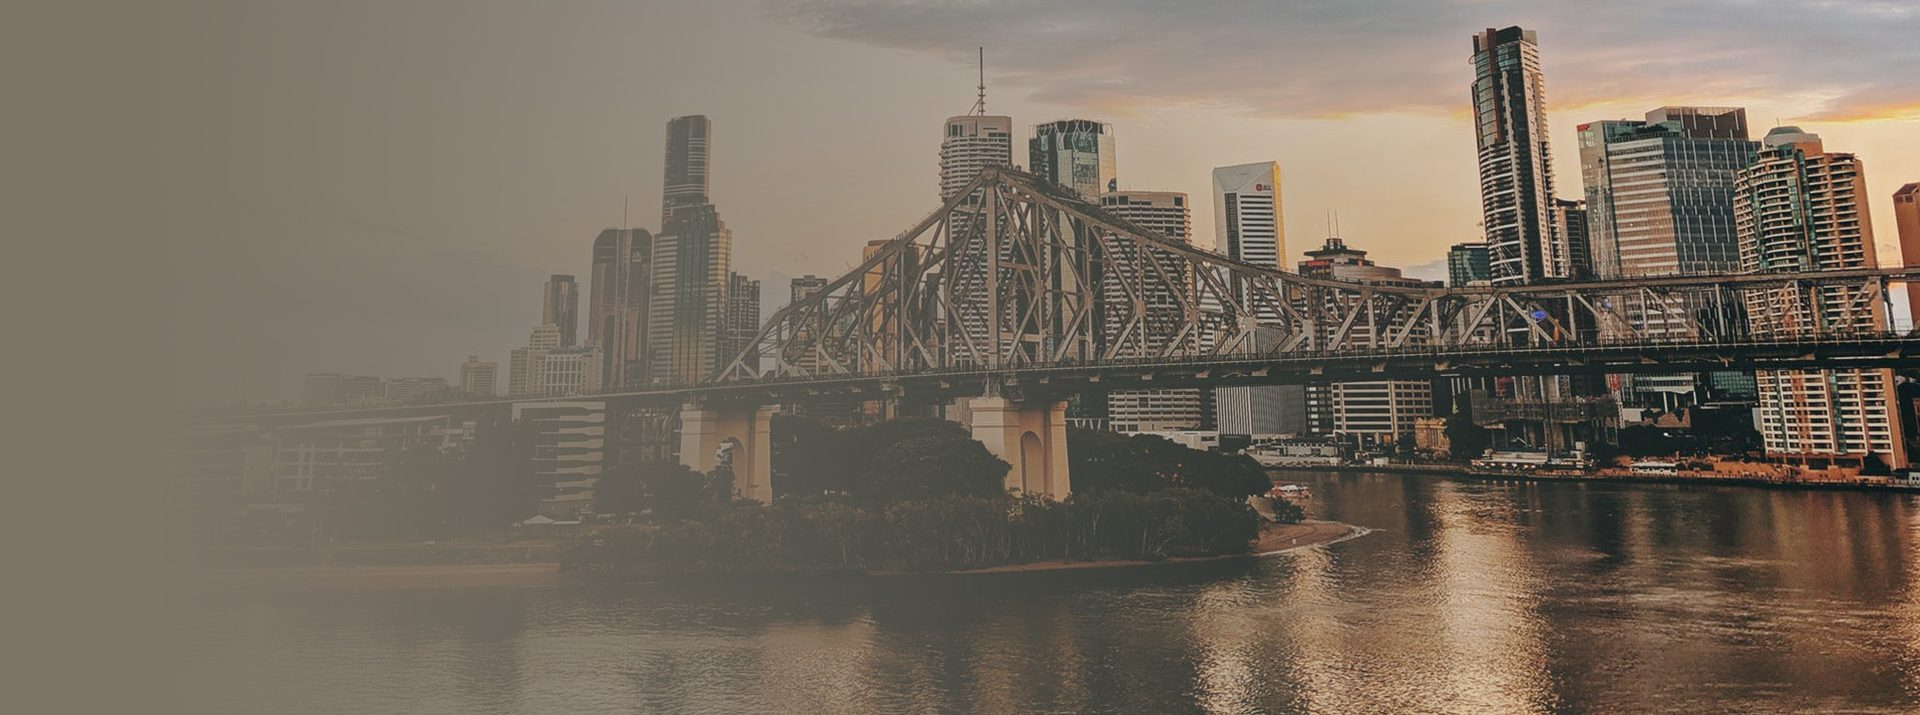 Our practice is based in Brisbane, Queensland